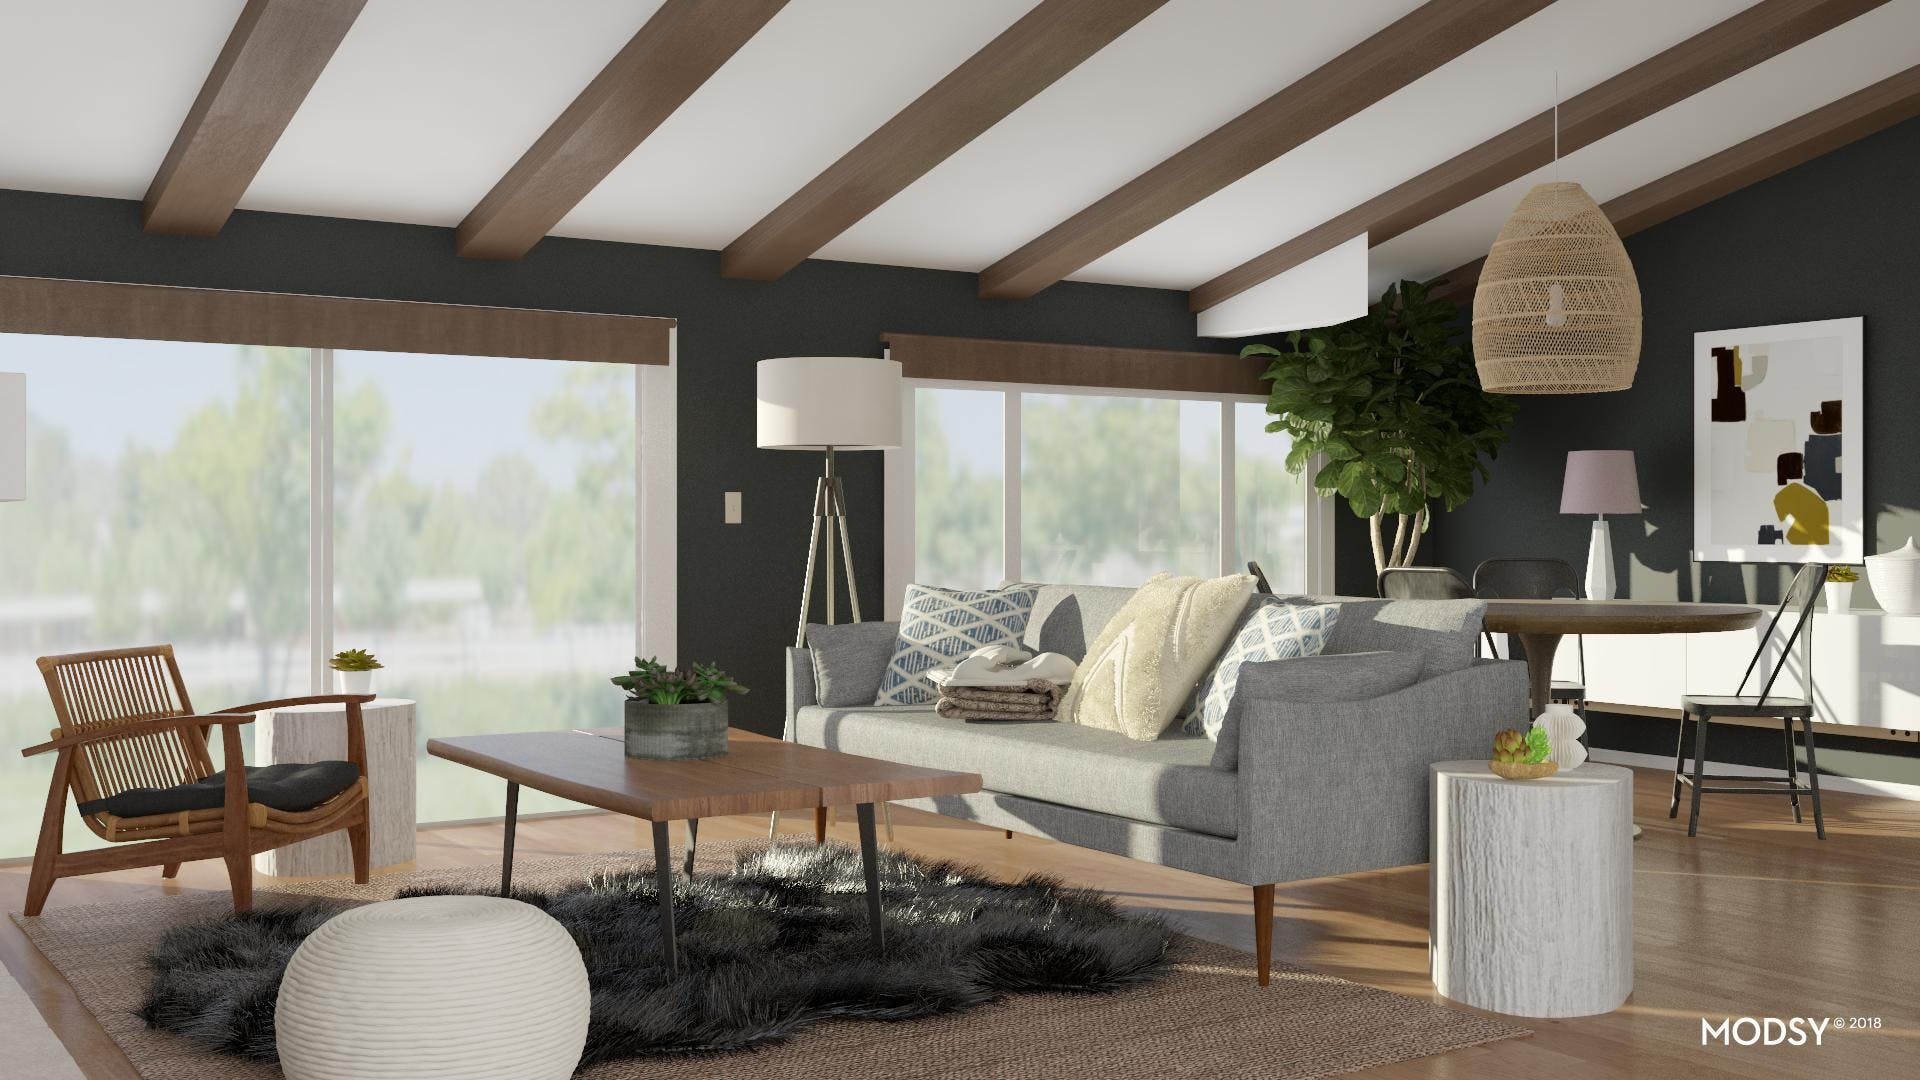 A Modern Living Room With Rustic Coastal Vibes